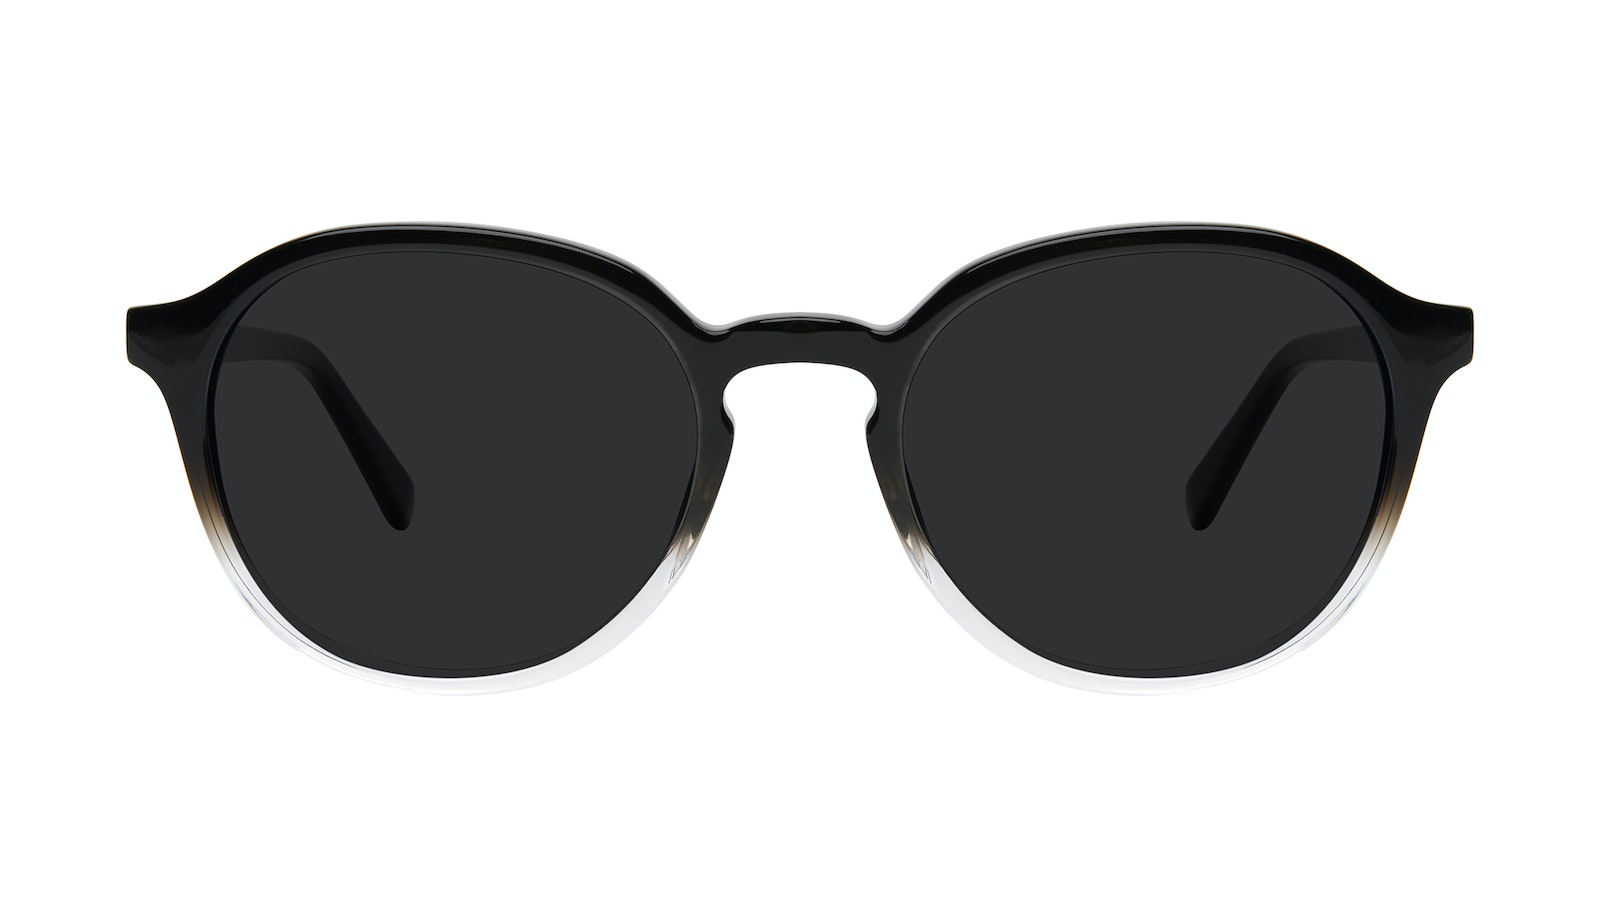 Affordable Fashion Glasses Round Sunglasses Men Ansel Onyx Clear